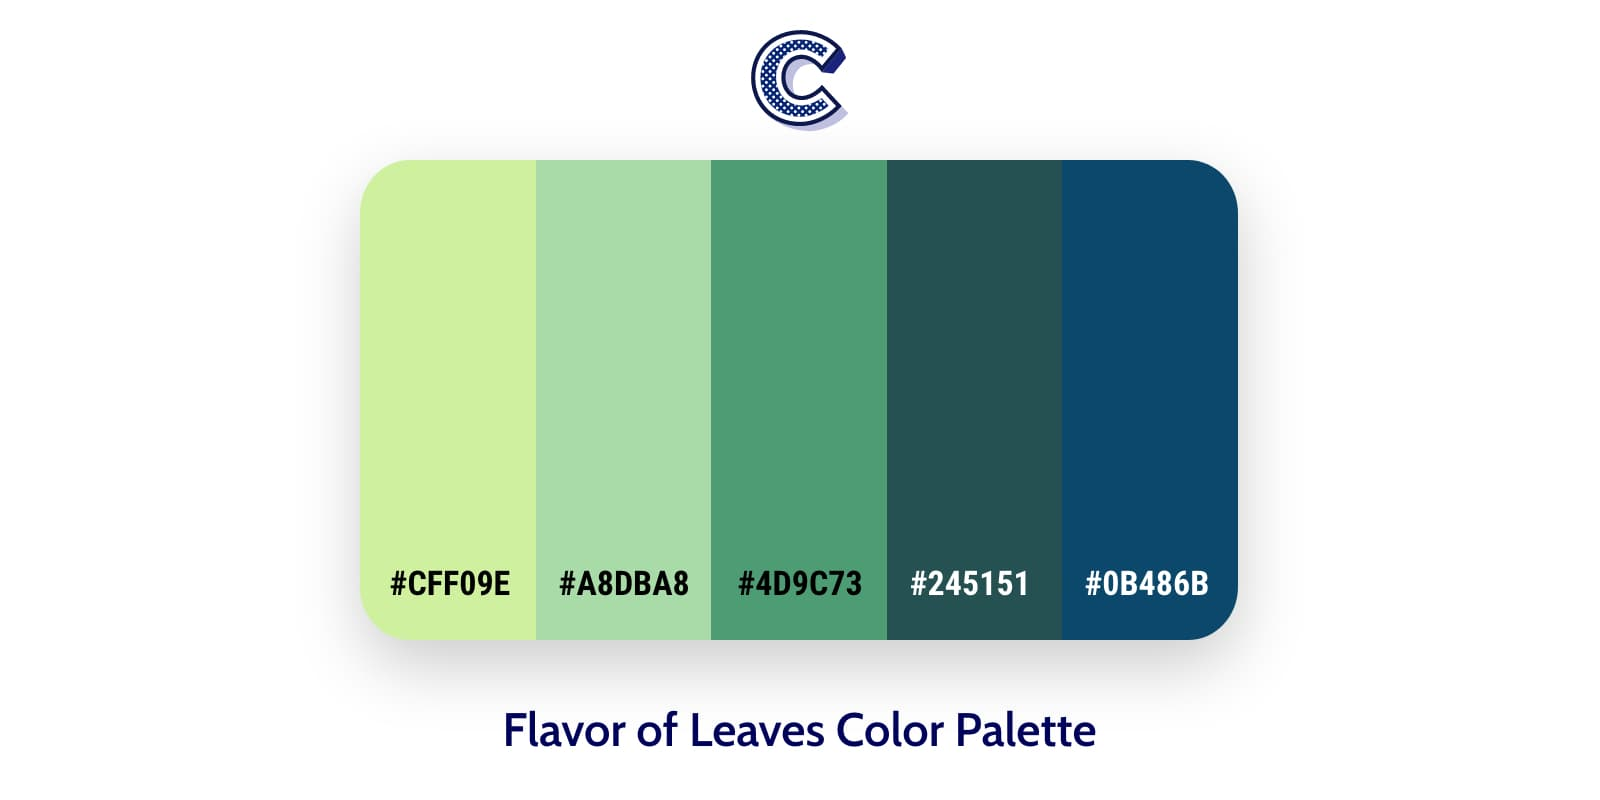 the features image of flavor of leaves